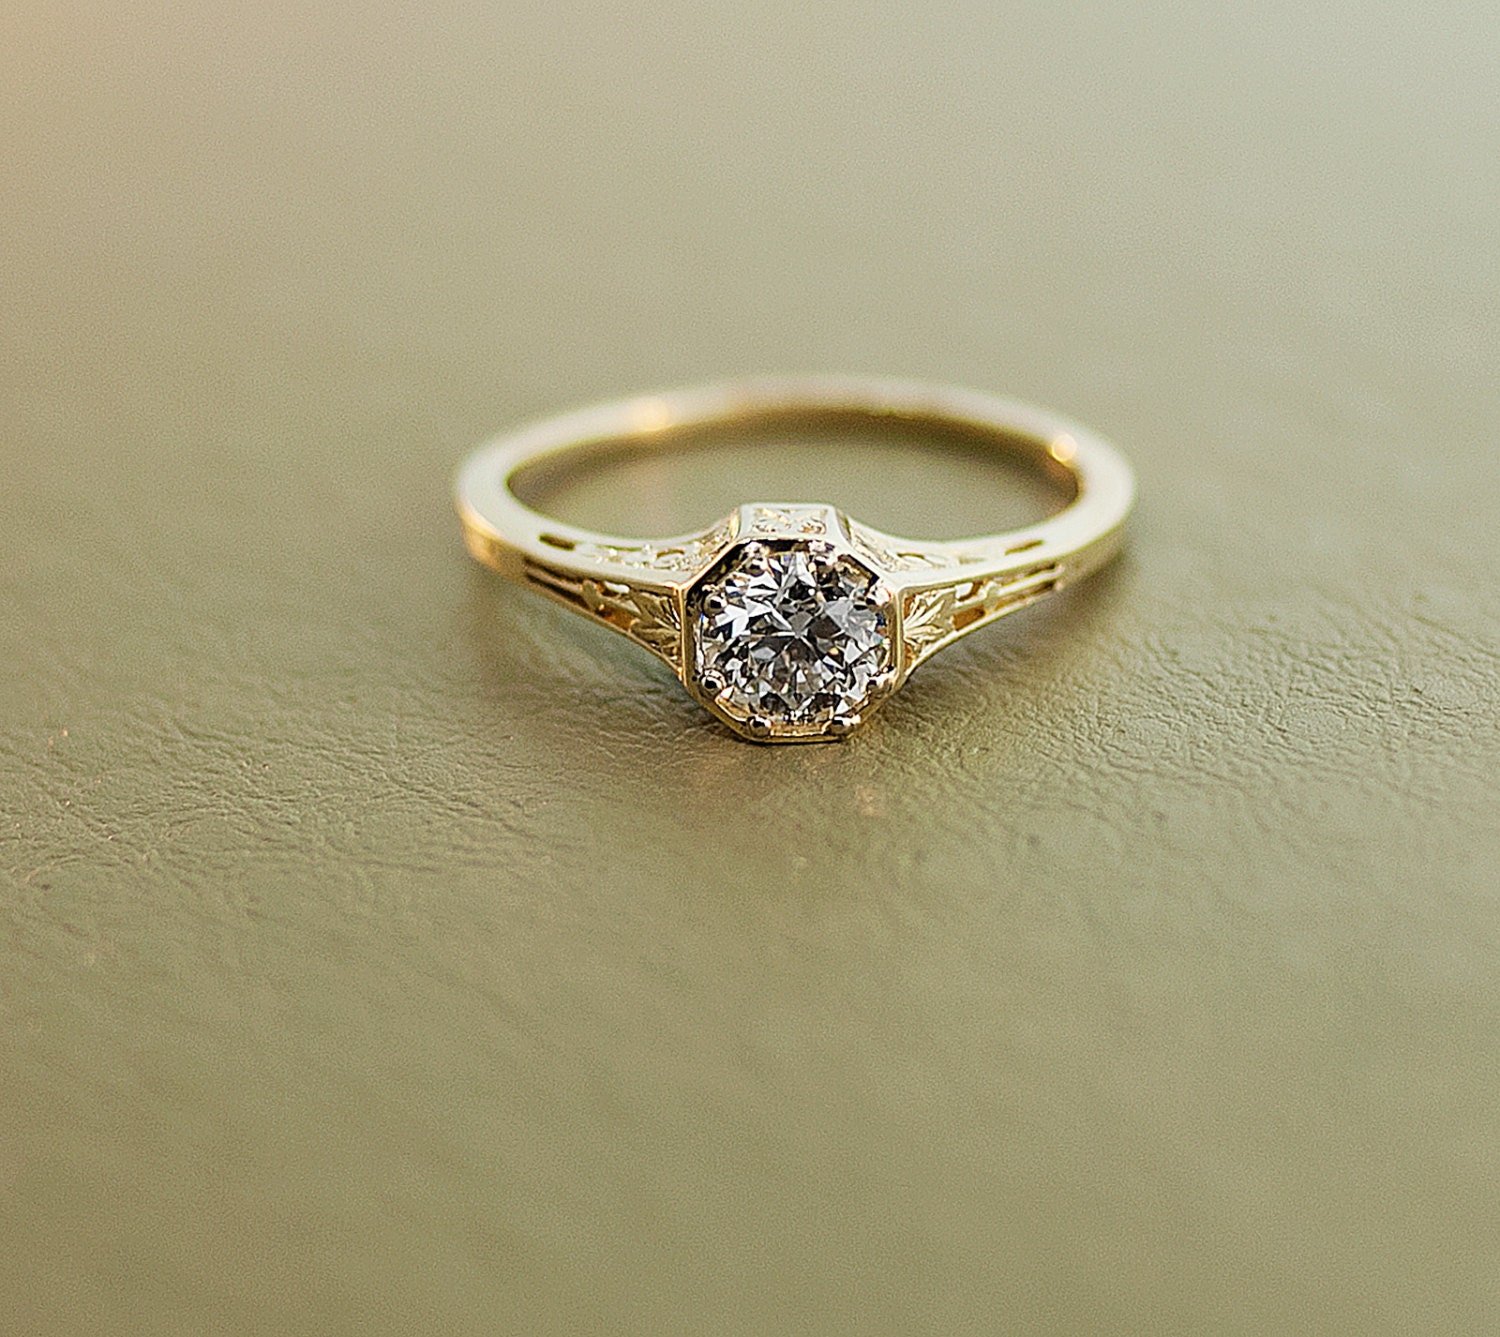 ... Antique Diamond Engagement Ring - 15K Yellow Gold and Diamond. 🔎zoom